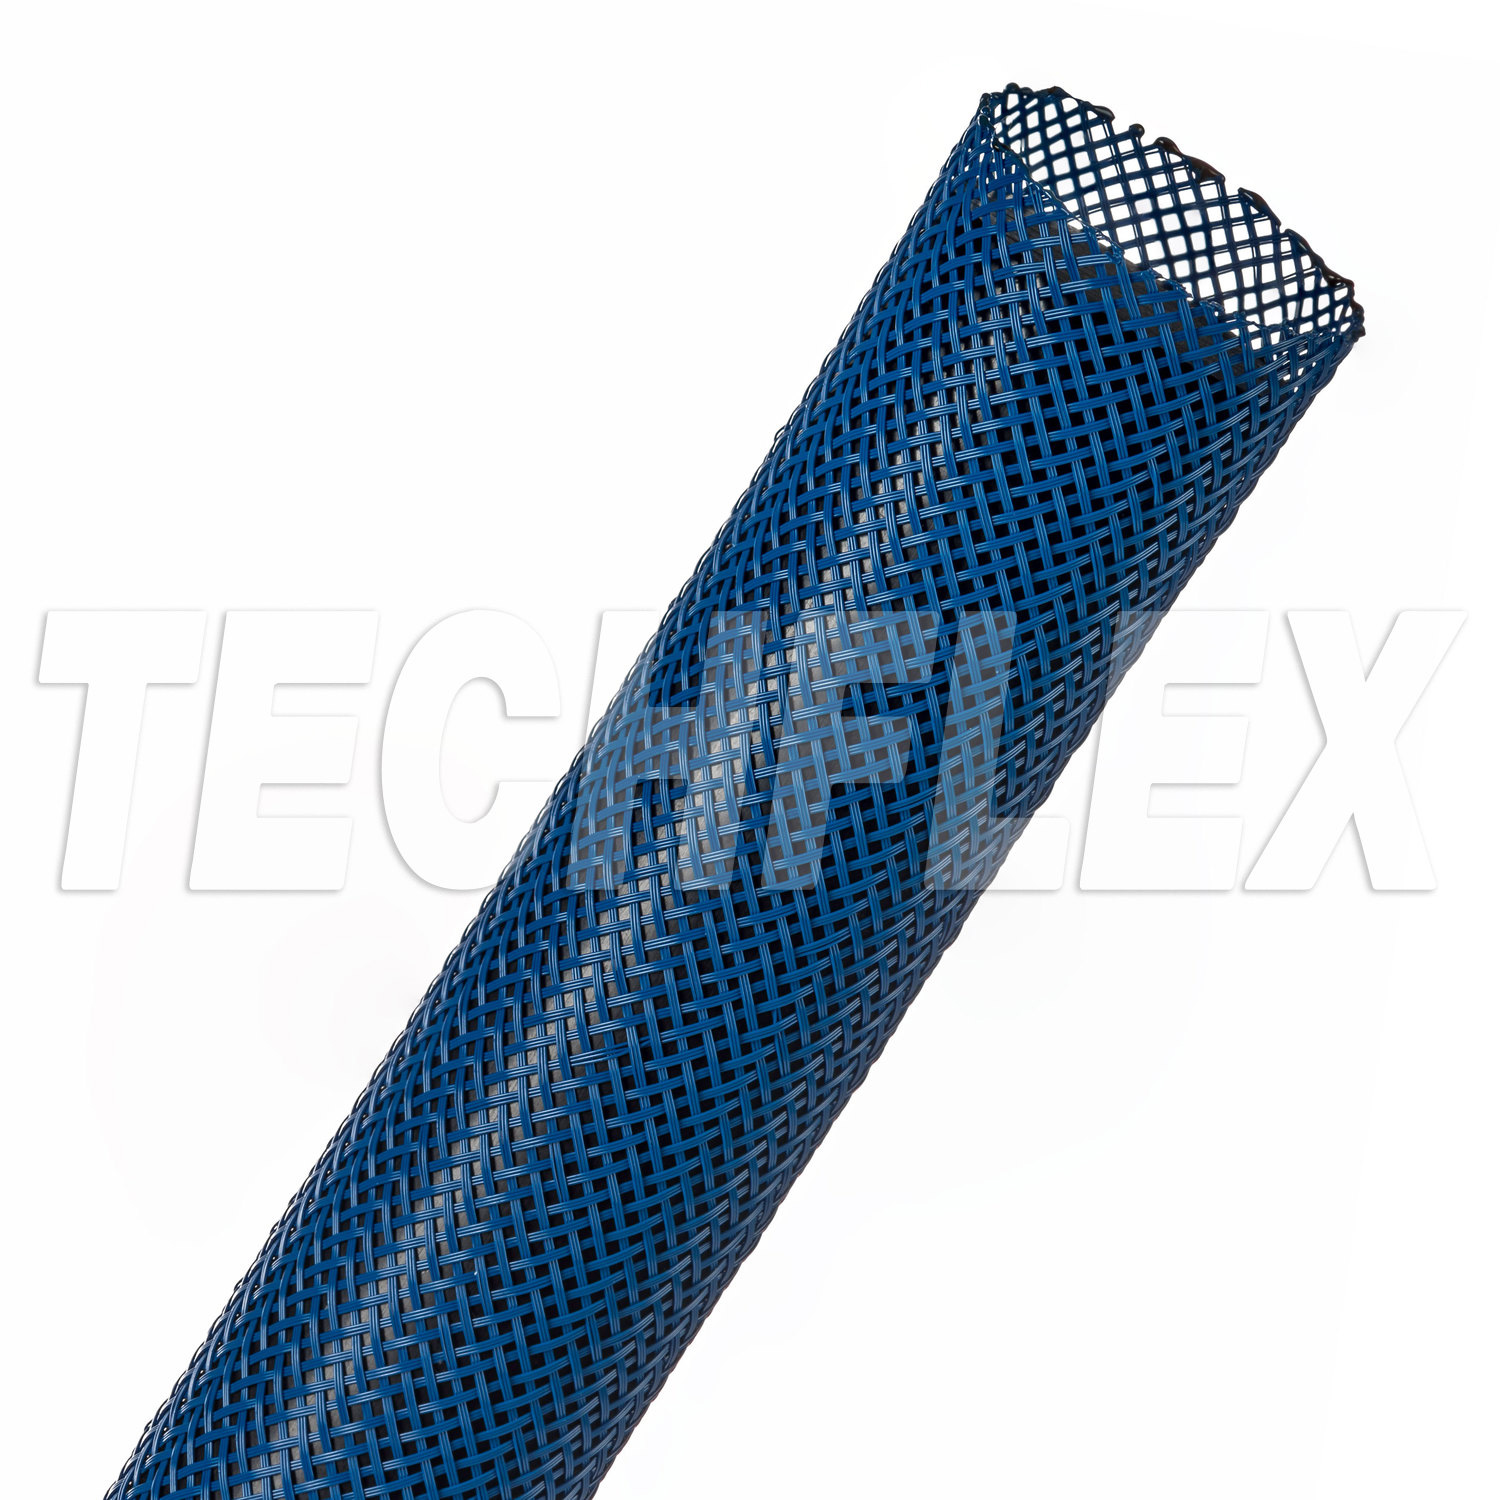 3/4In-1 3/4 Expandable Tubing Blue 250 Foot Roll PET6-250-BE